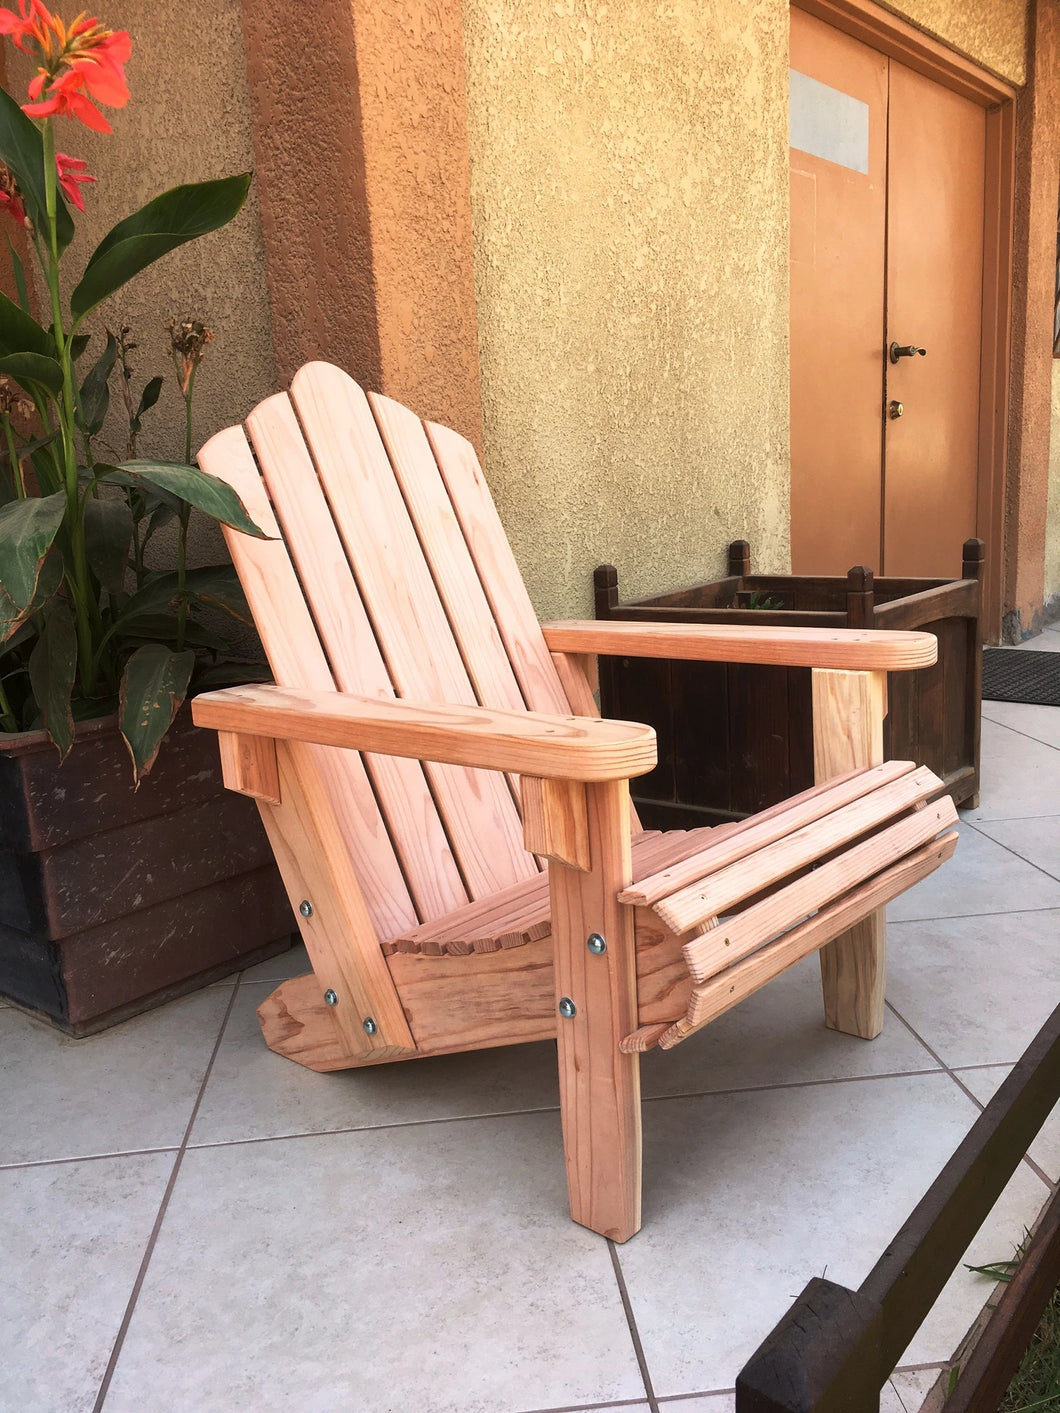 Outdoor Redwood Adirondack Chair - Best Redwood